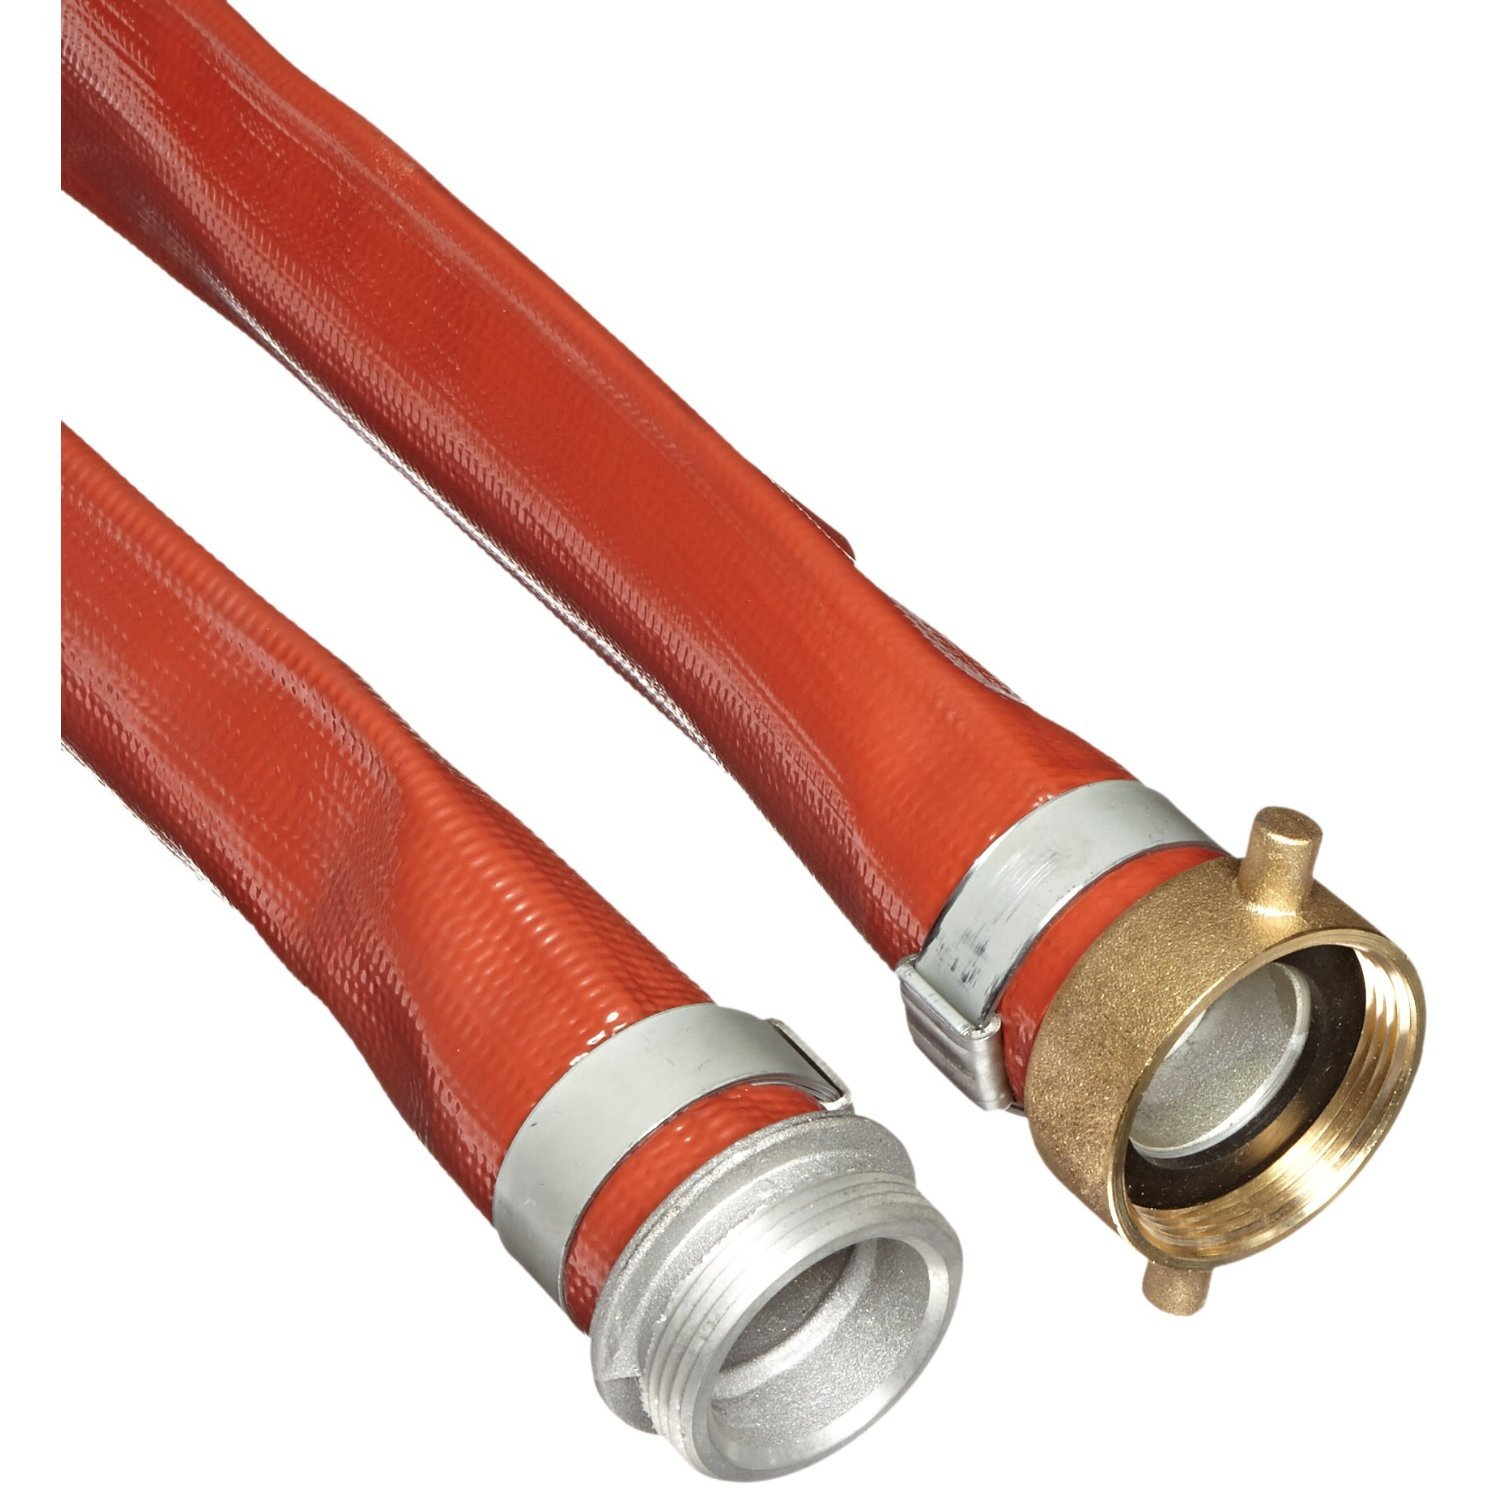 Unisource 250 Red PVC Discharge Hose Assembly, 2'' MPT x NPSM Female Swivel Connection, 150 PSI Maximum Pressure, 100' Length, 2'' ID